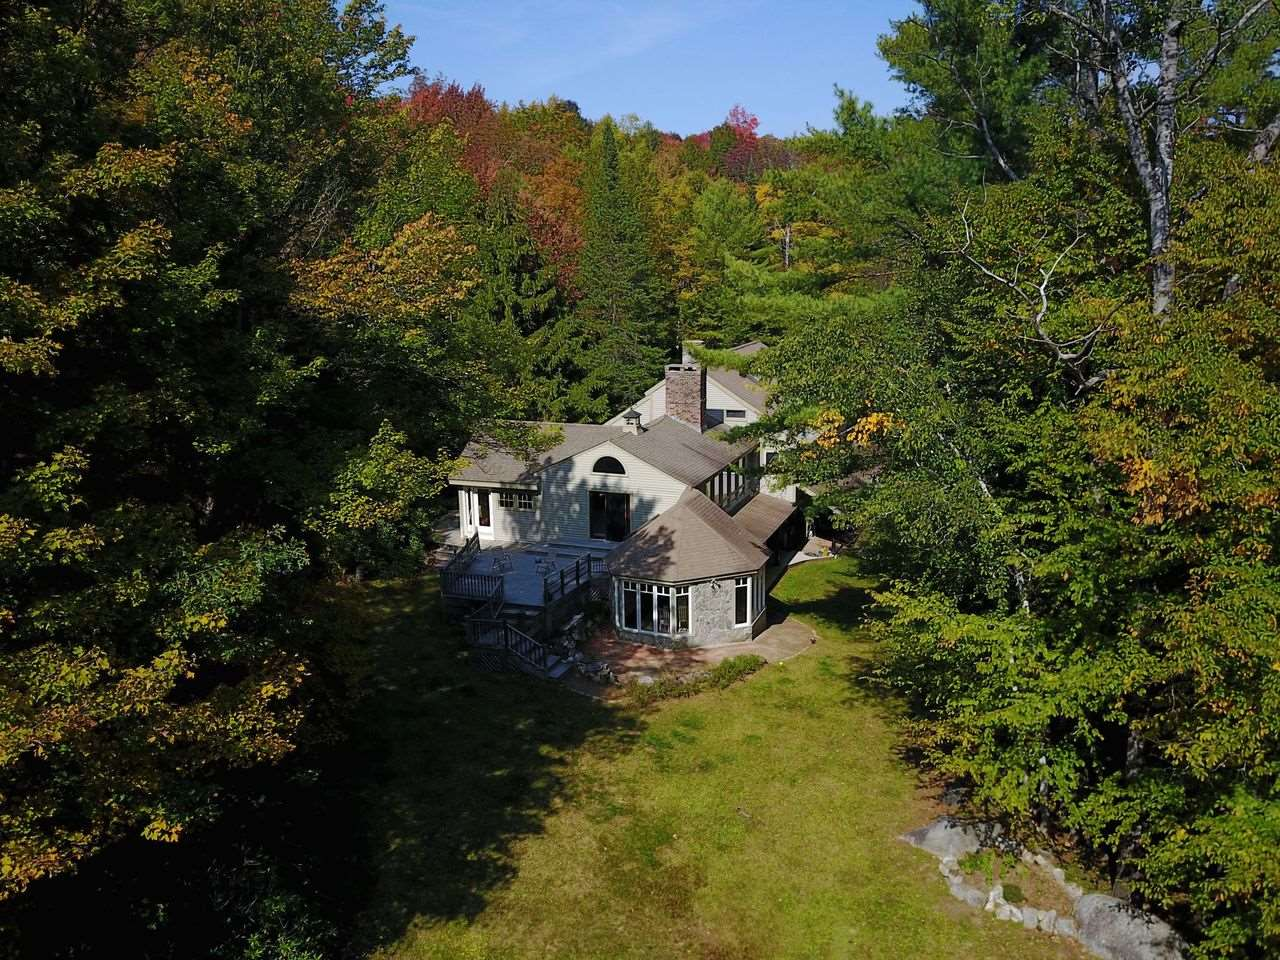 MLS 4831006: 21 QUAKER Path, Wilmot NH